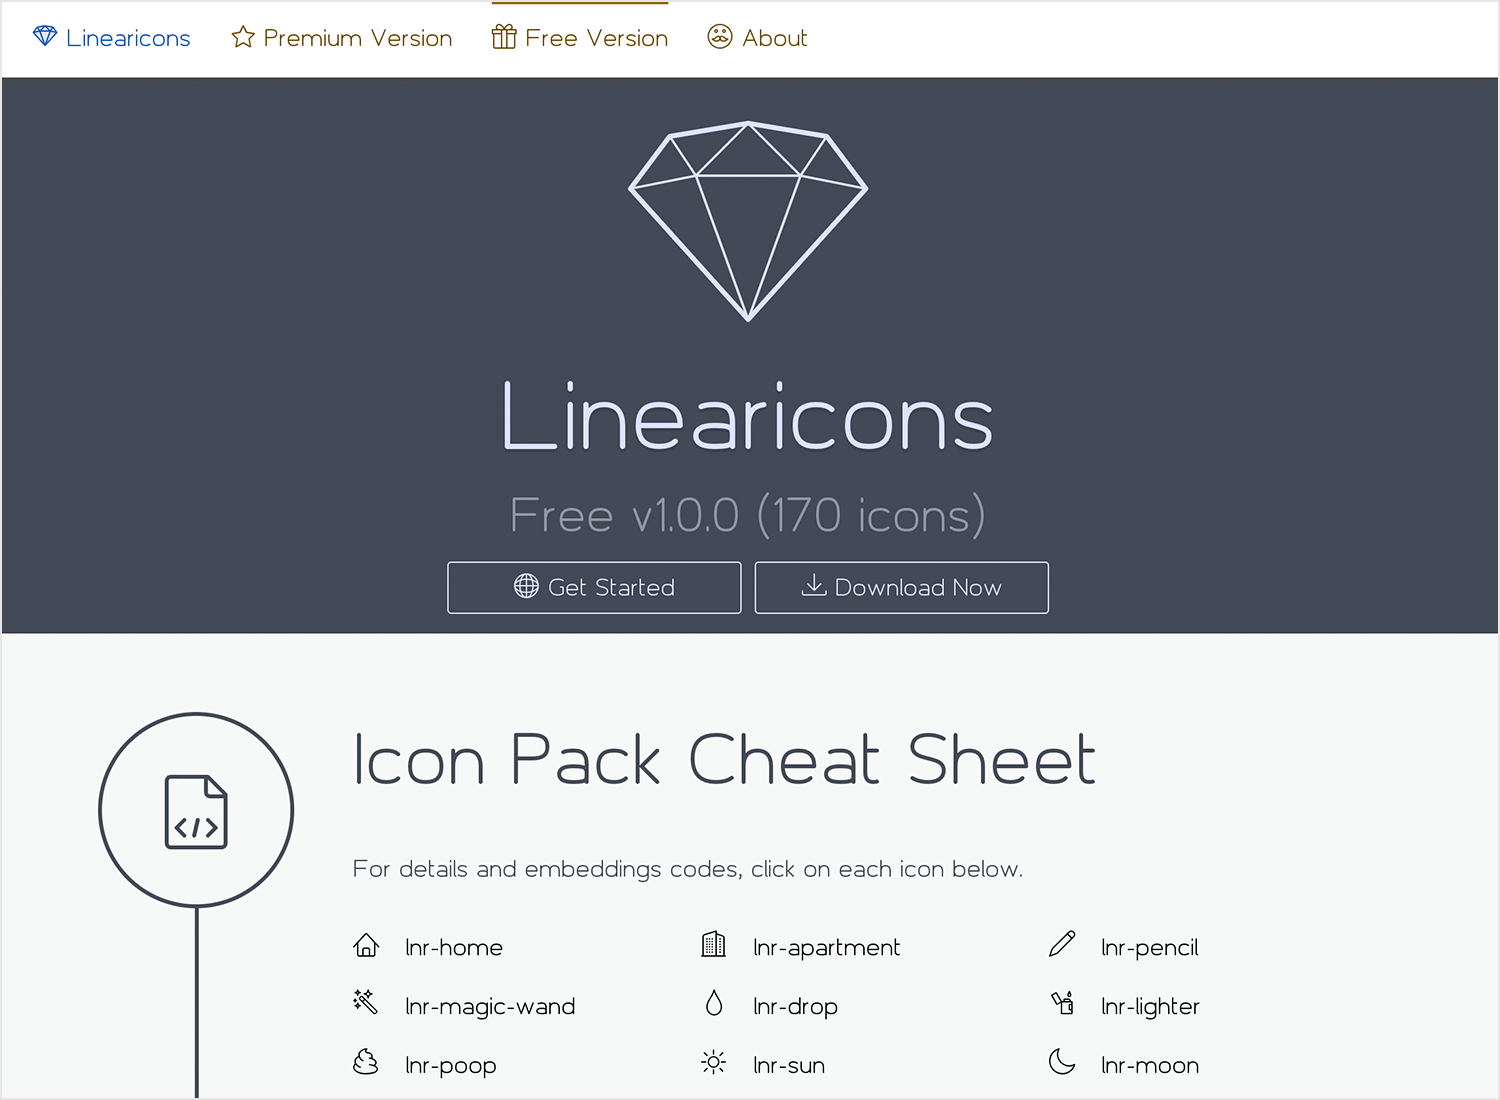 Free website icons to download - Linearicons